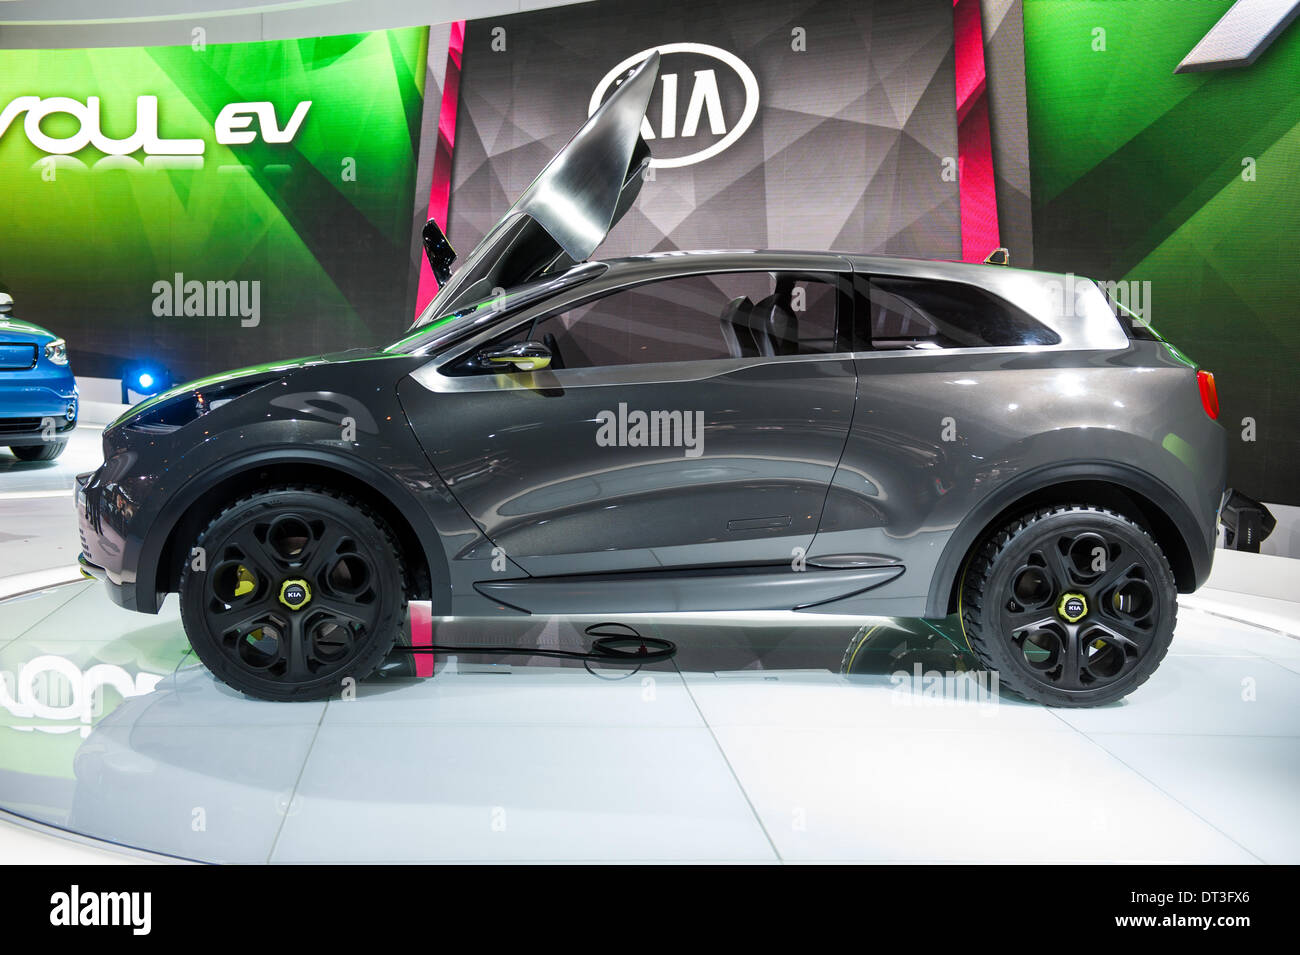 Chicago, USA. 6th Feb, 2014. The Kia Niro concept vehicle on display at the 2014 Chicago Auto Show on February 6, 2014. Credit: Max Herman / Alamy Live News - Stock Image